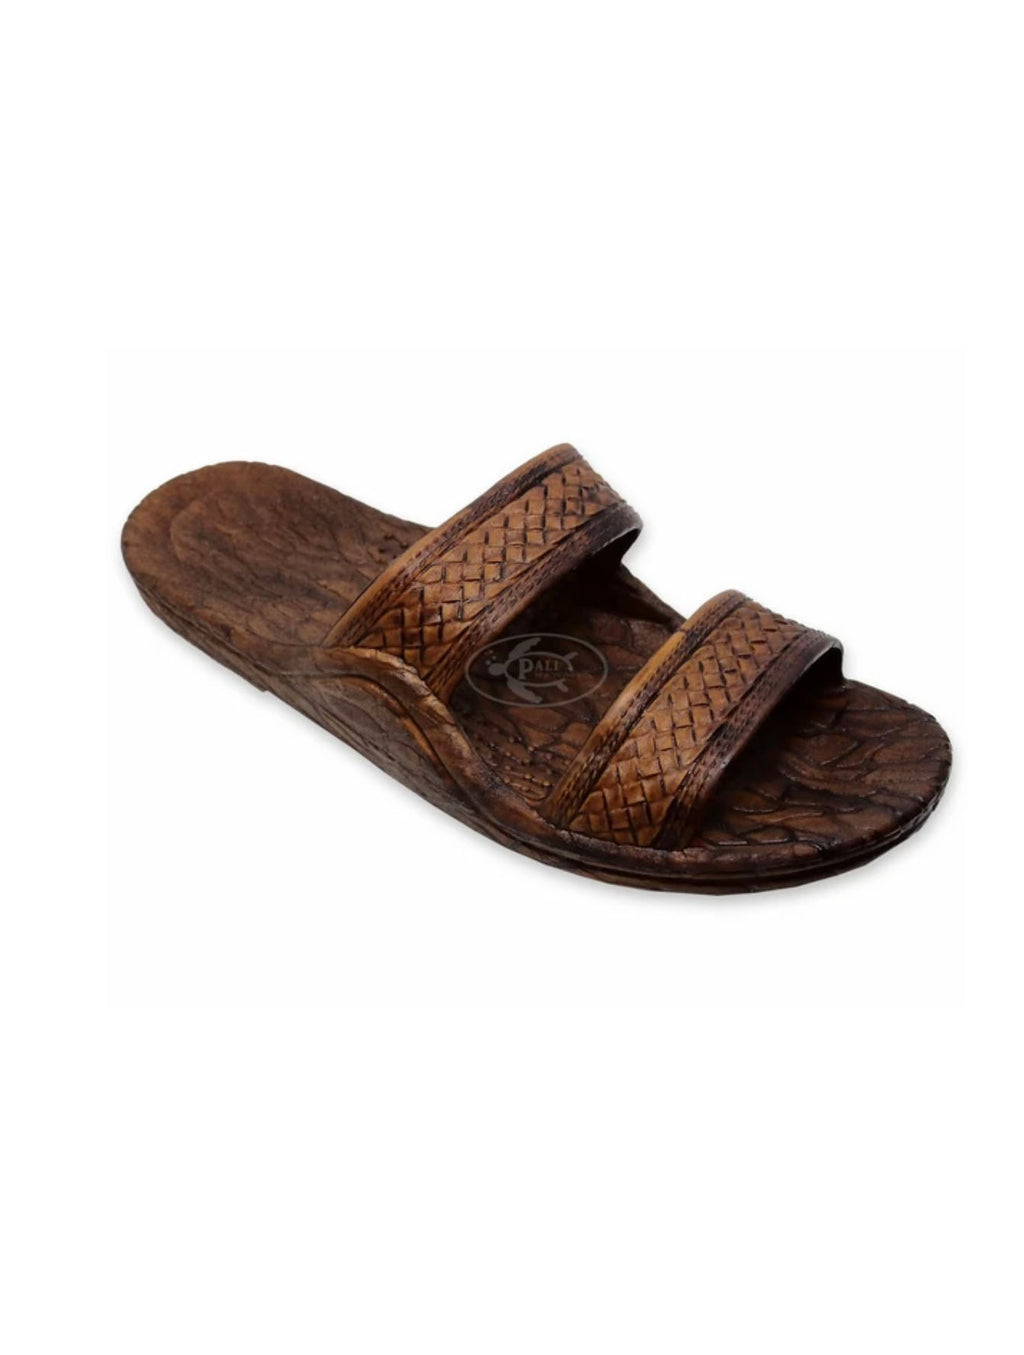 Pali Hawaii Slide Sandal in Light Brown